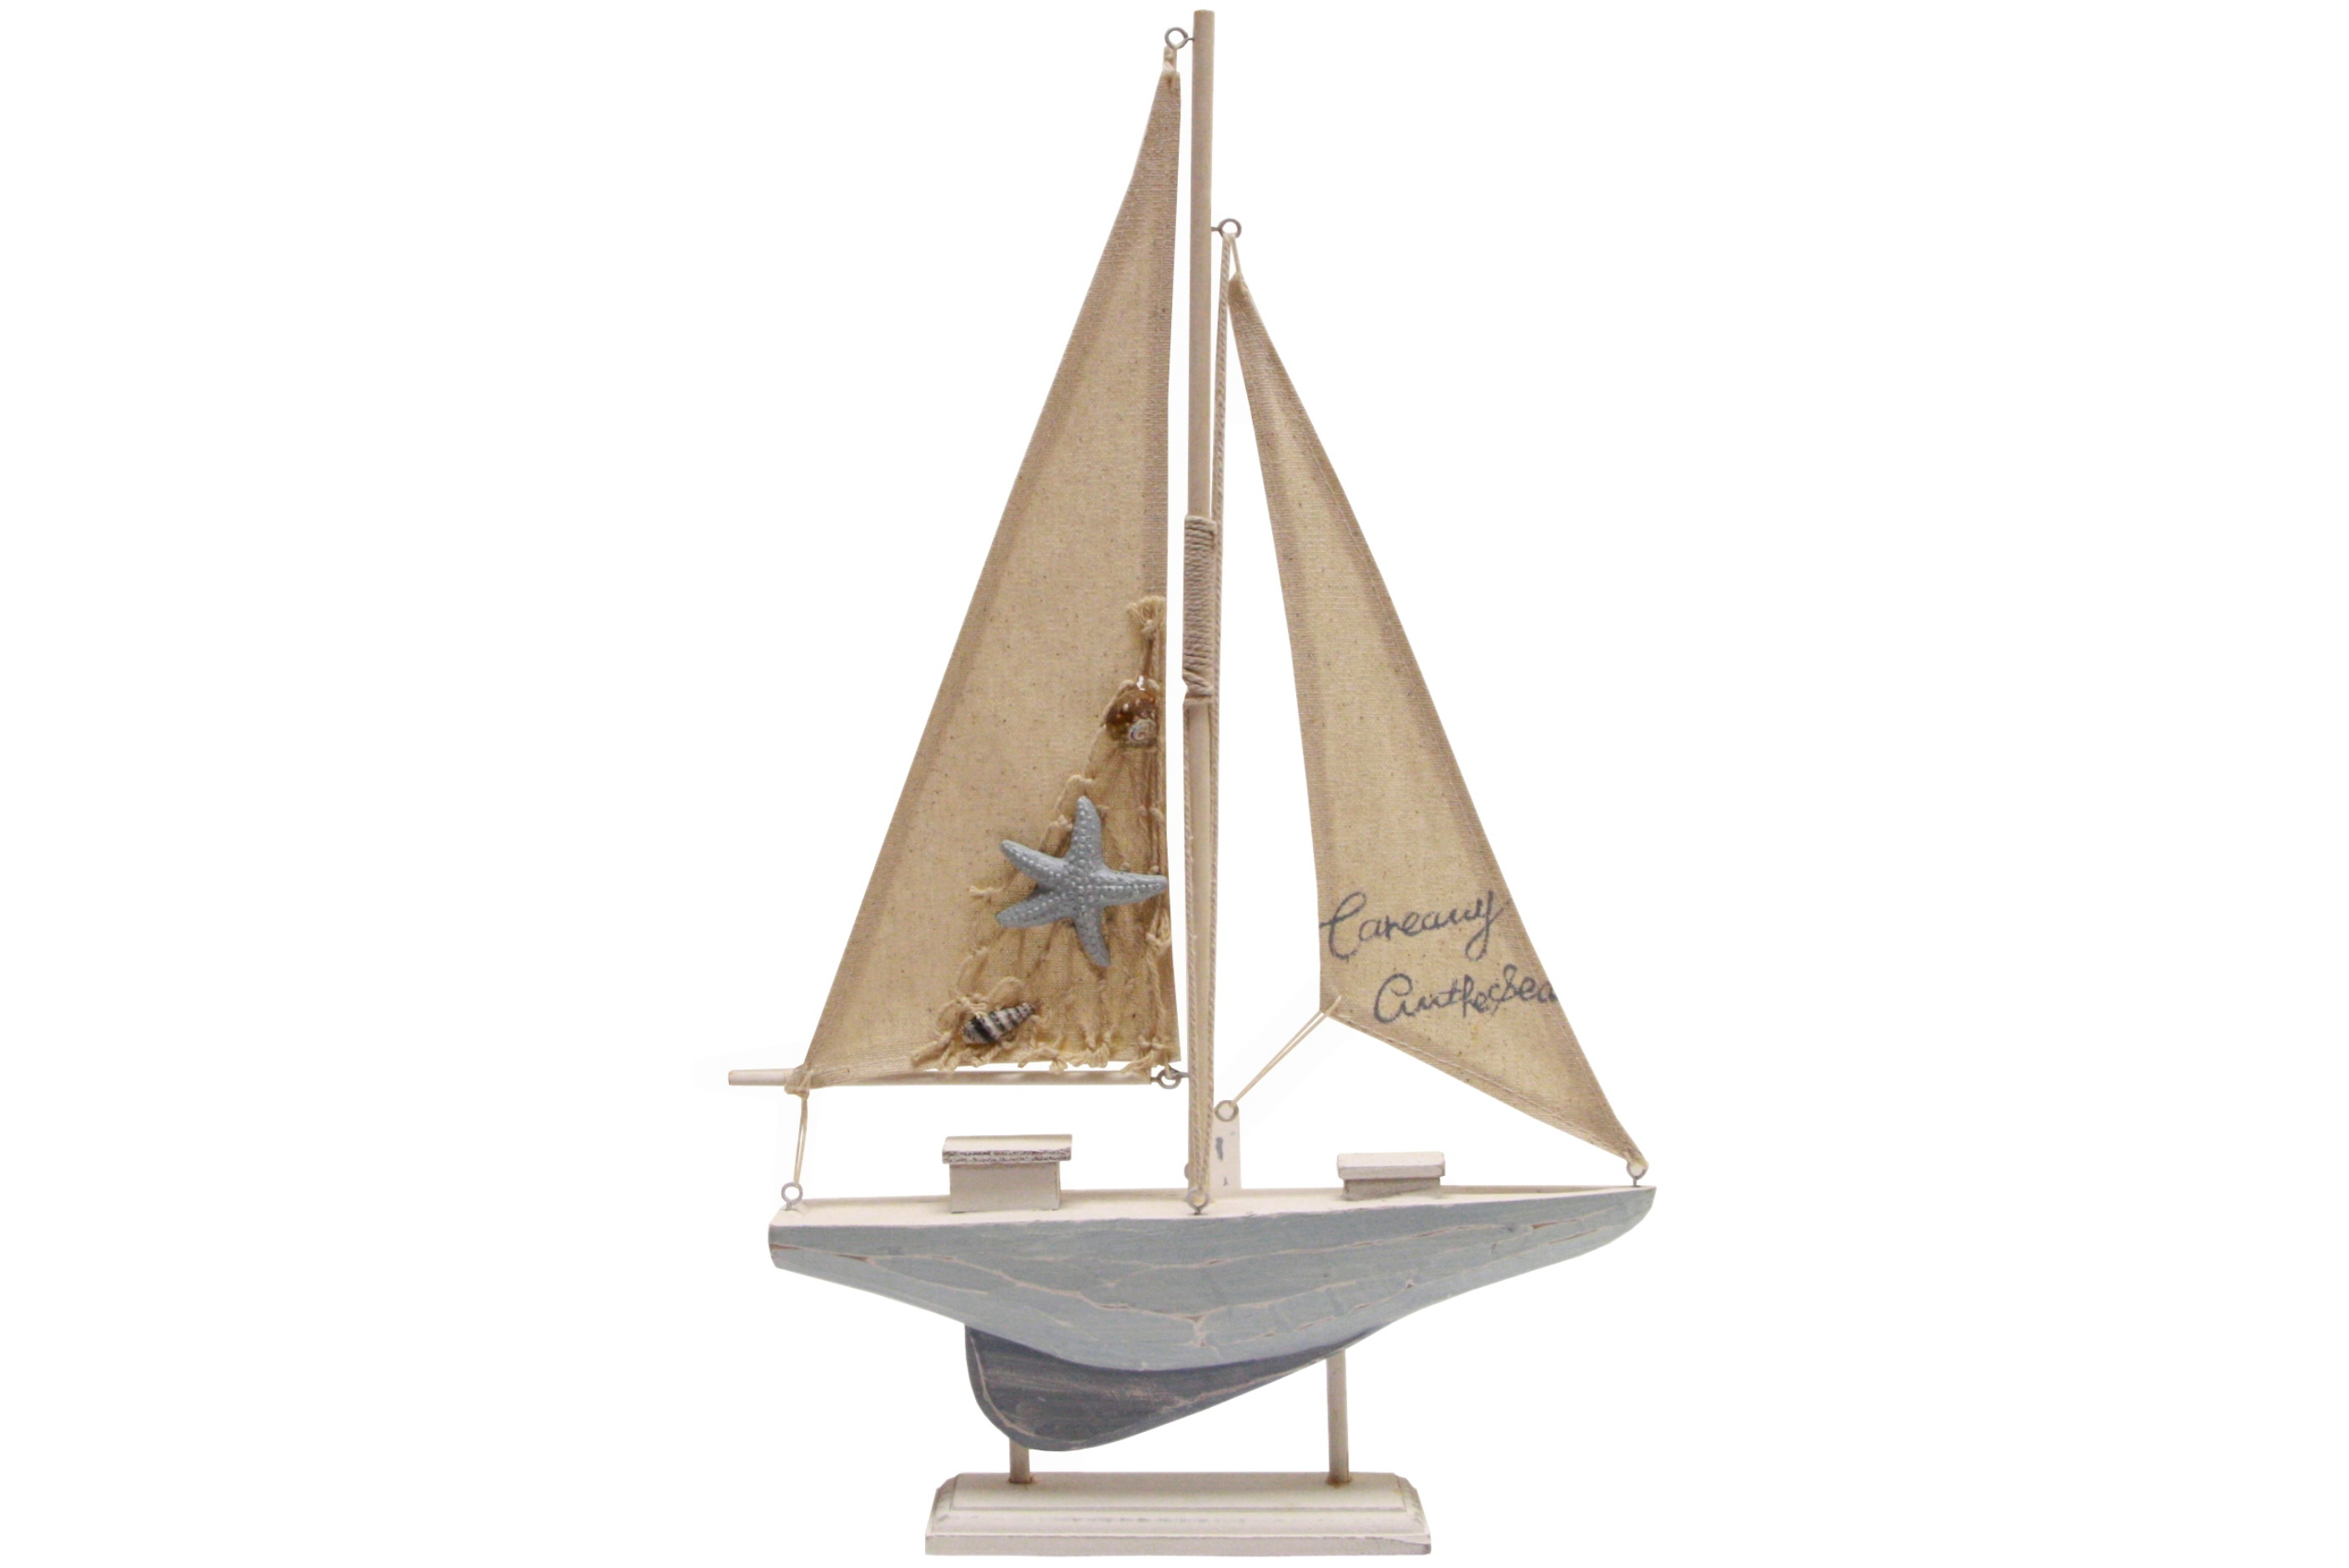 43cm Wooden Sailing Boat On Stand